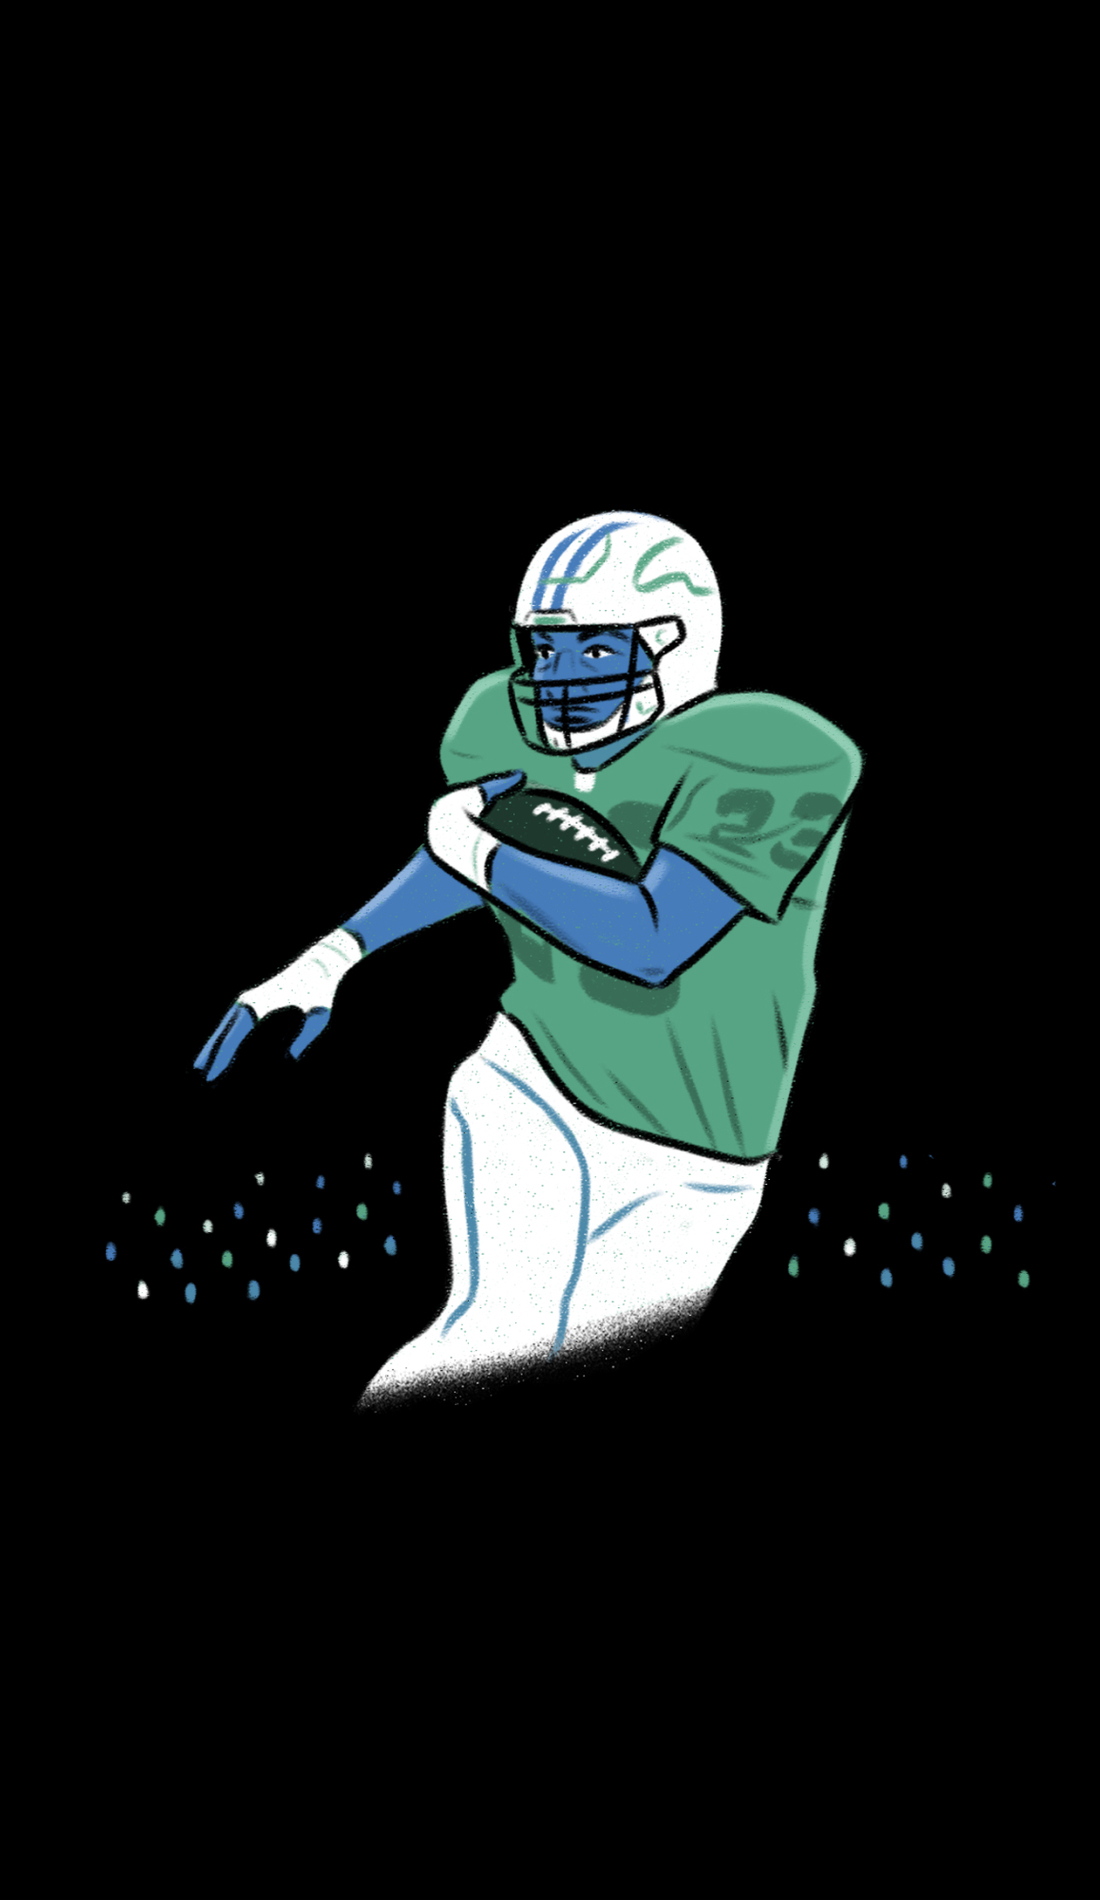 A Monmouth Hawks Football live event